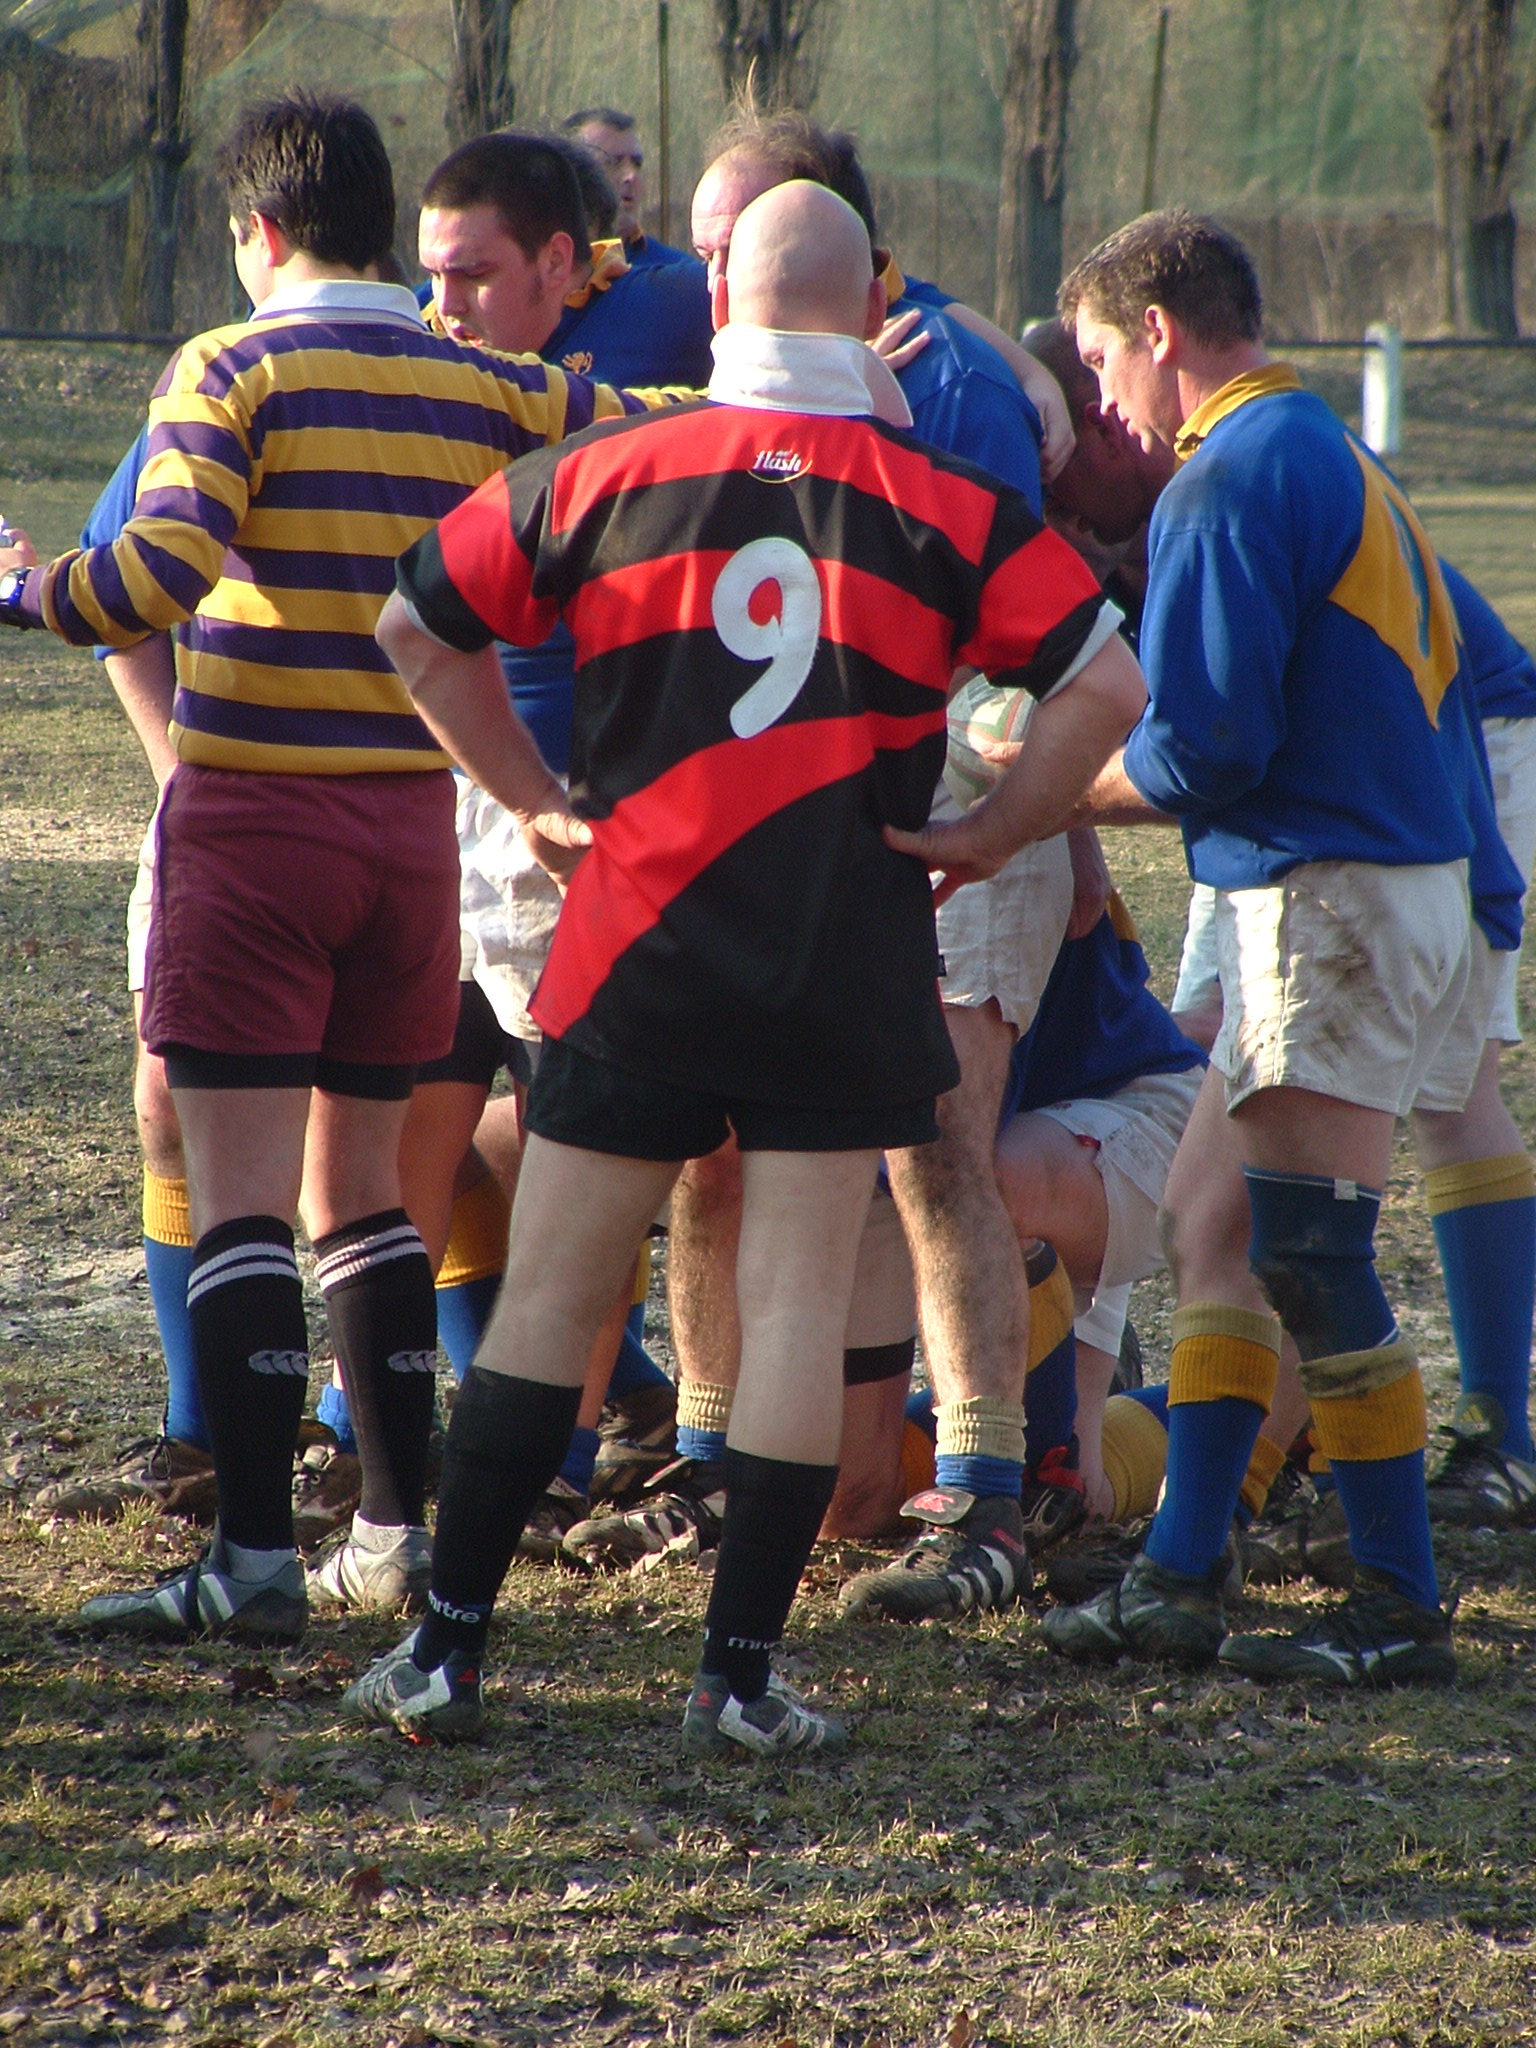 Rugby match Stag activity